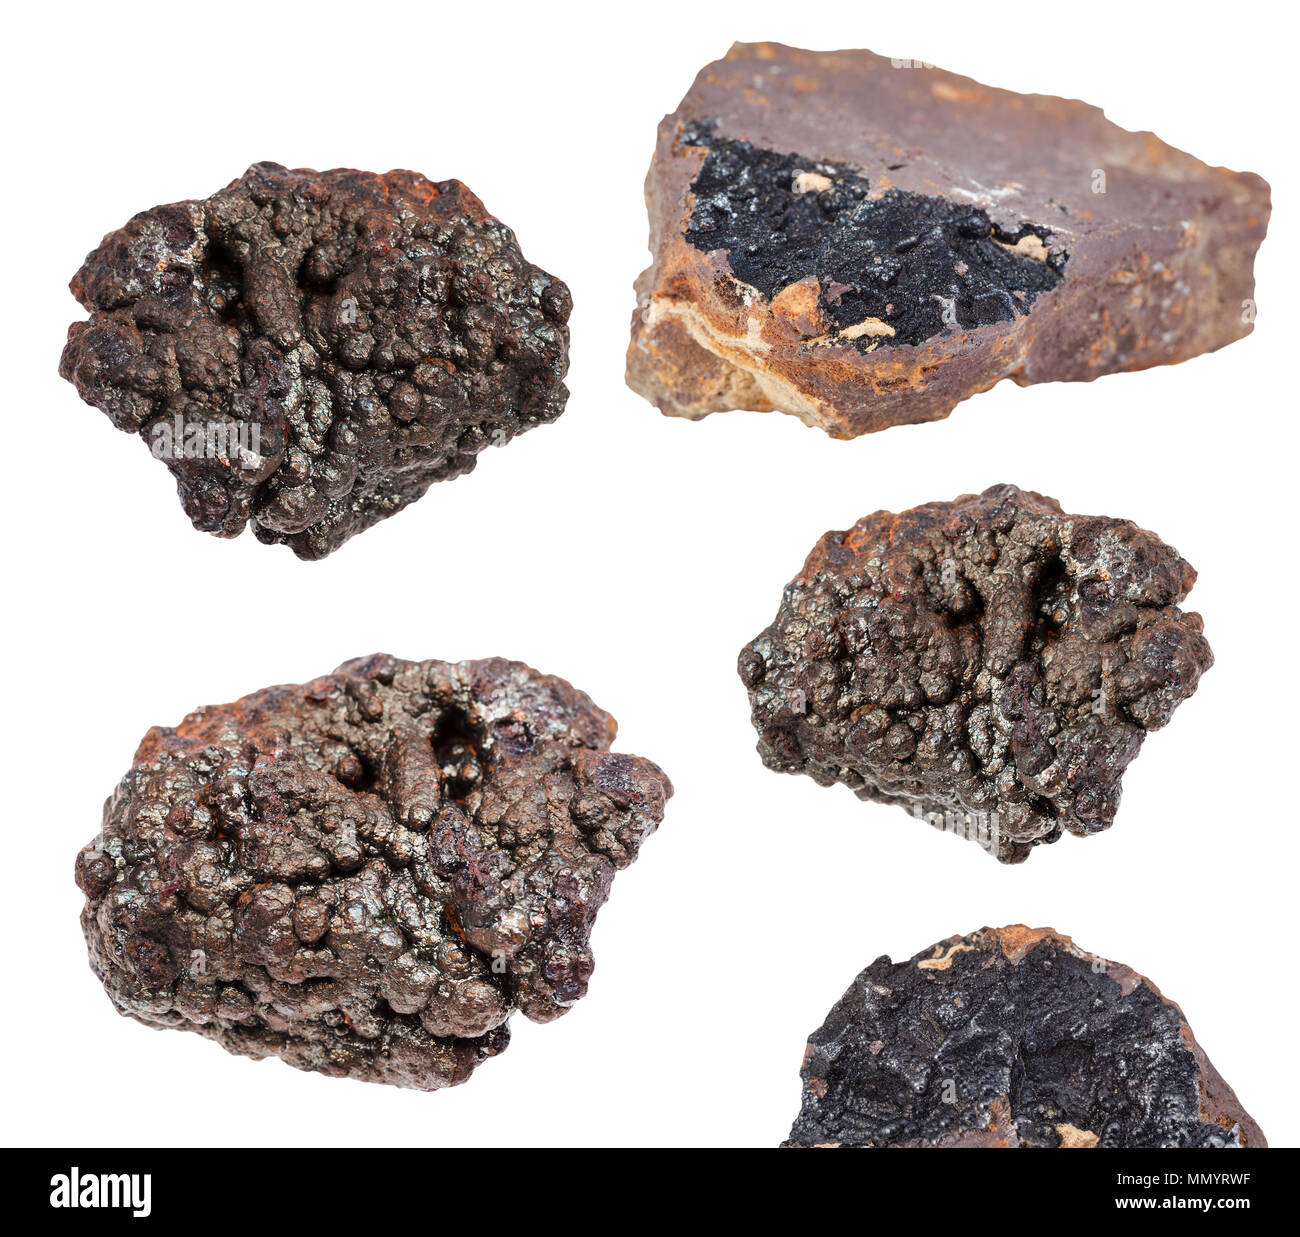 collection of various Goethite stones (brown iron ore) isolated on white background - Stock Image